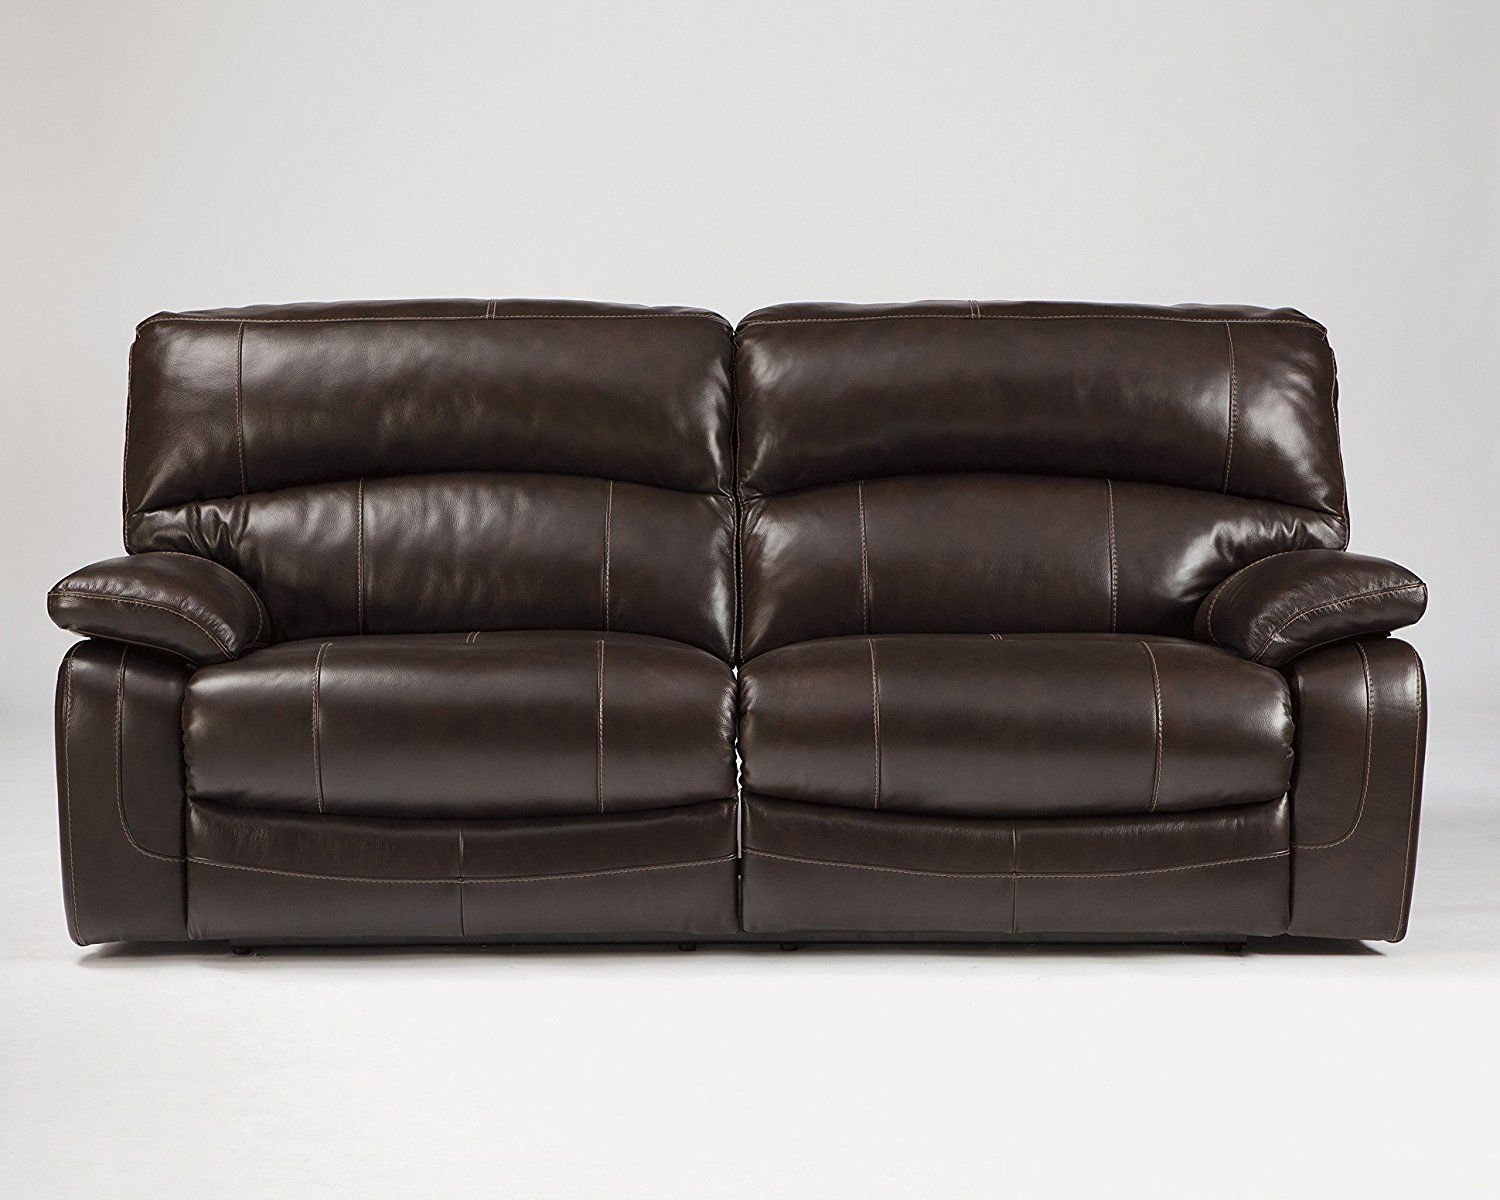 top ashley leather sofa and loveseat ideas-Lovely ashley Leather sofa and Loveseat Design